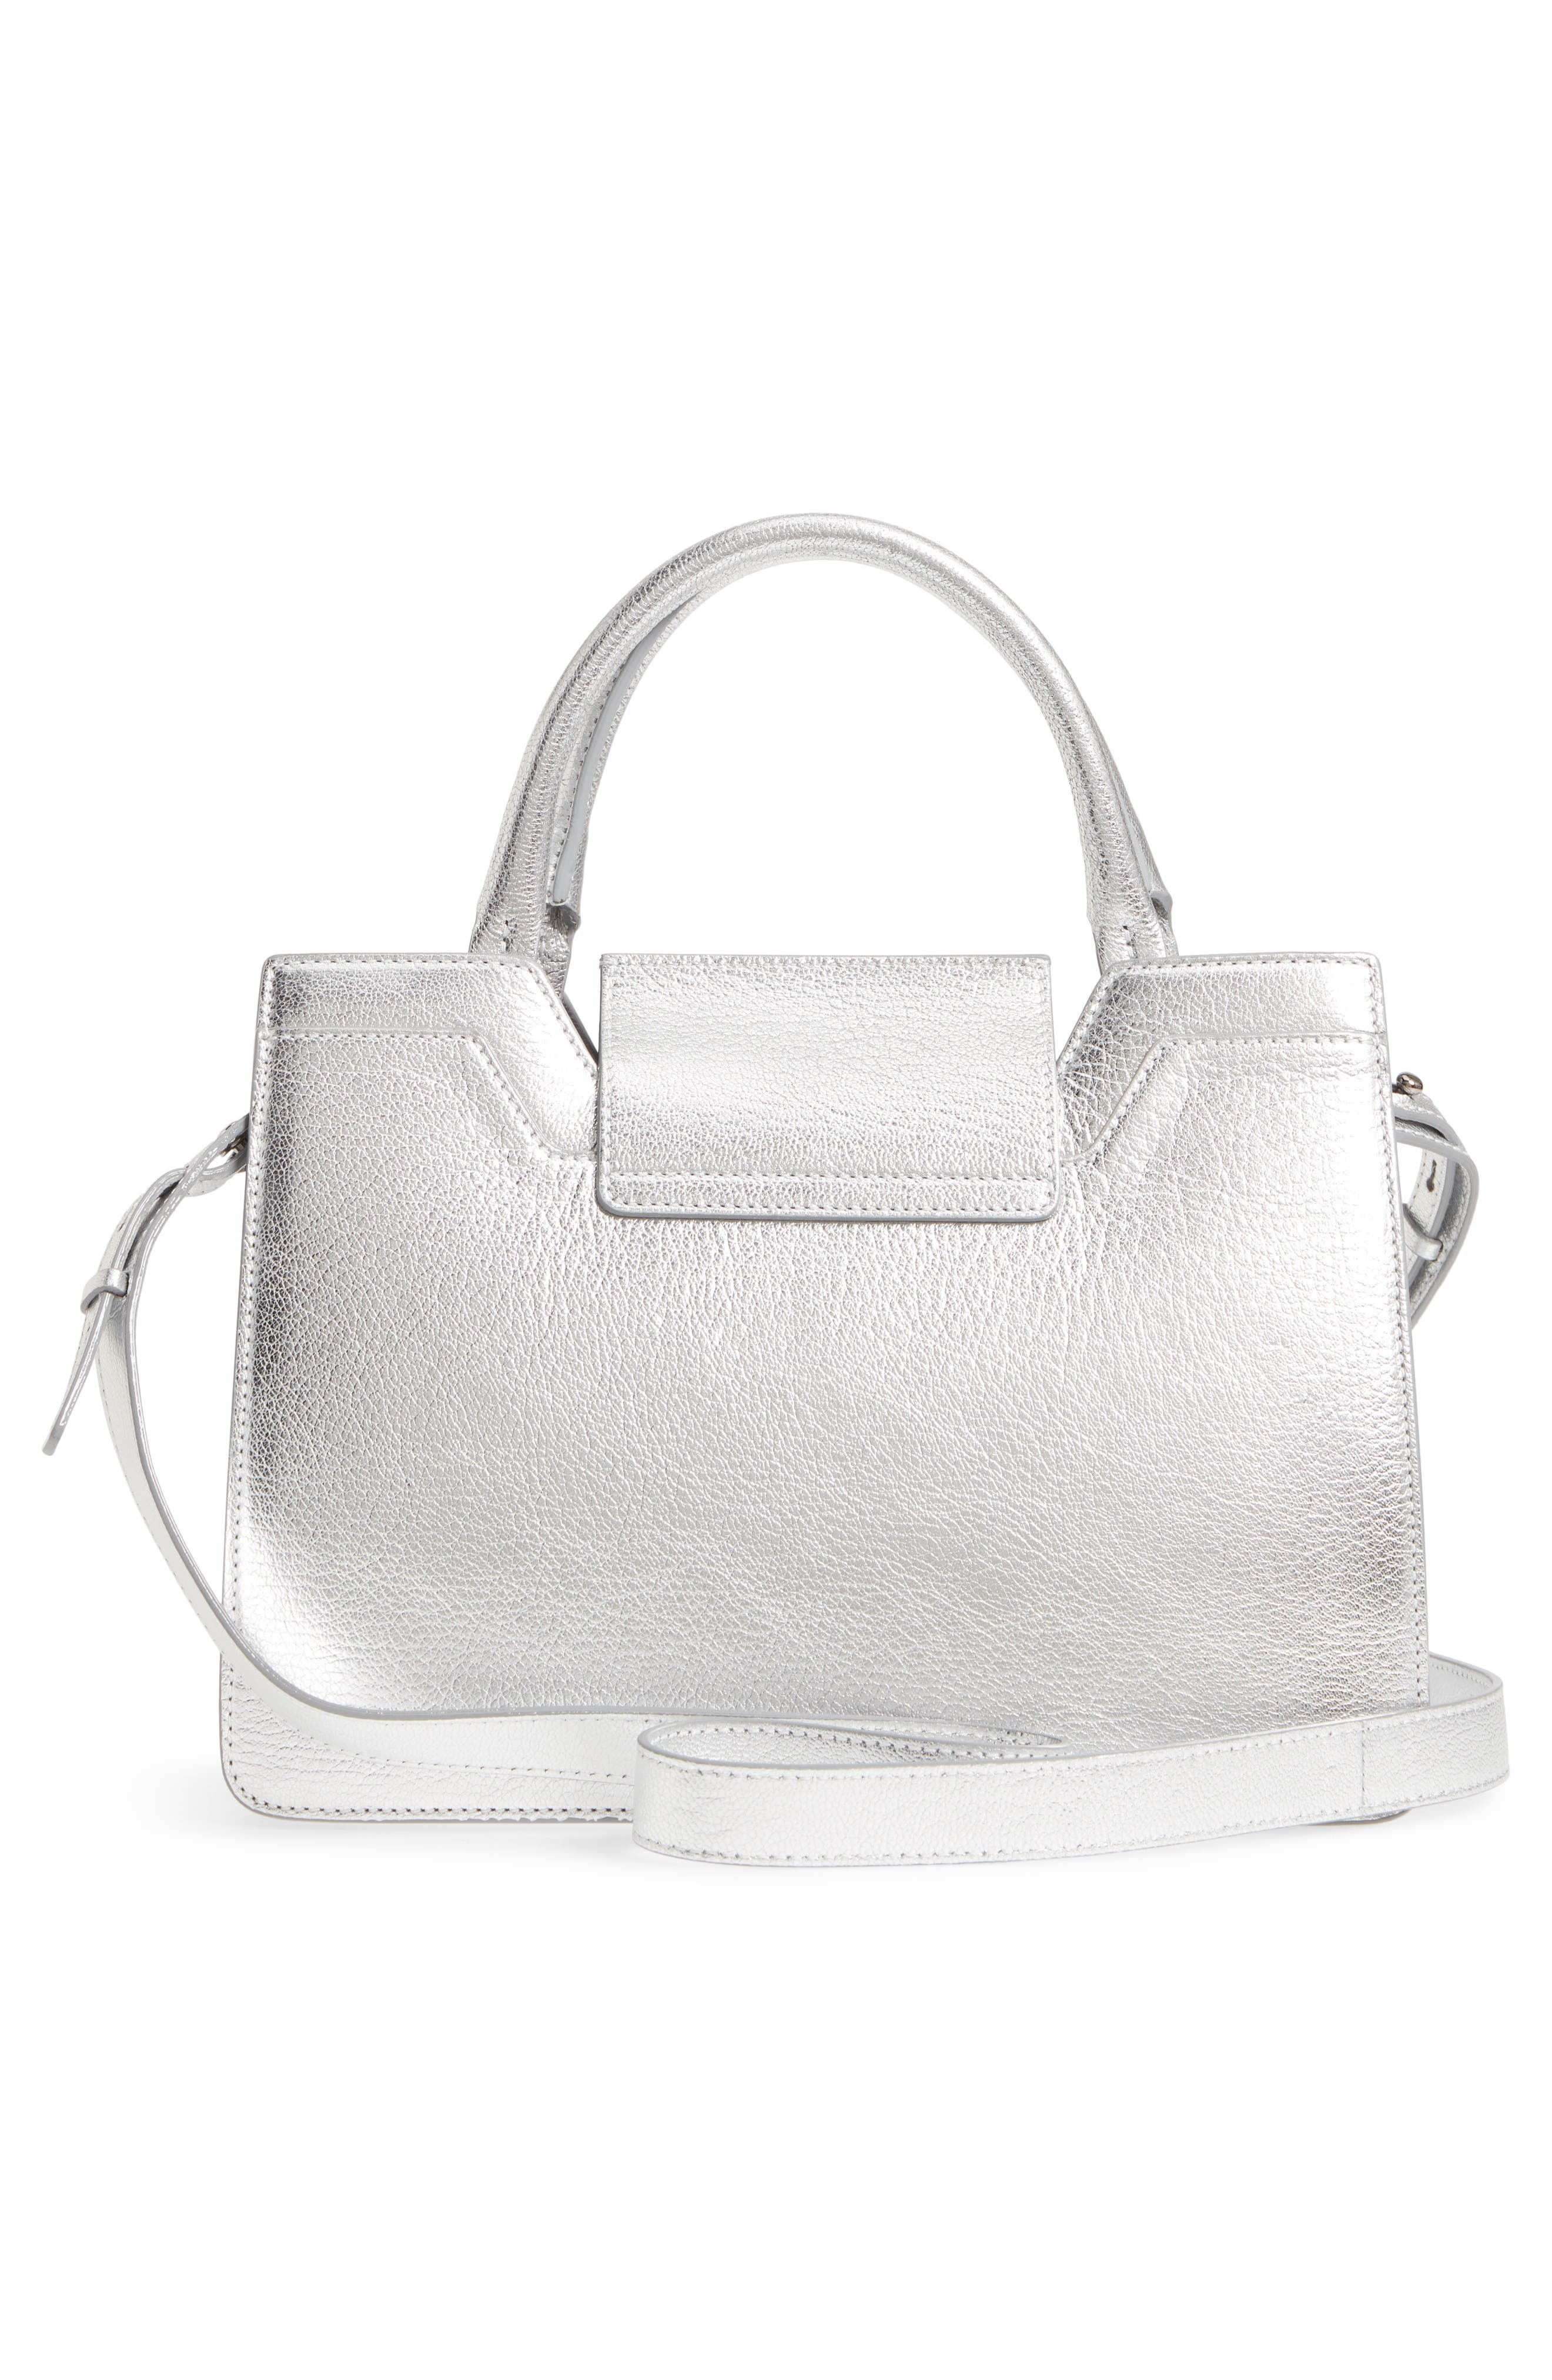 Small Rebel Metallic Leather Tote,                             Alternate thumbnail 3, color,                             Silver